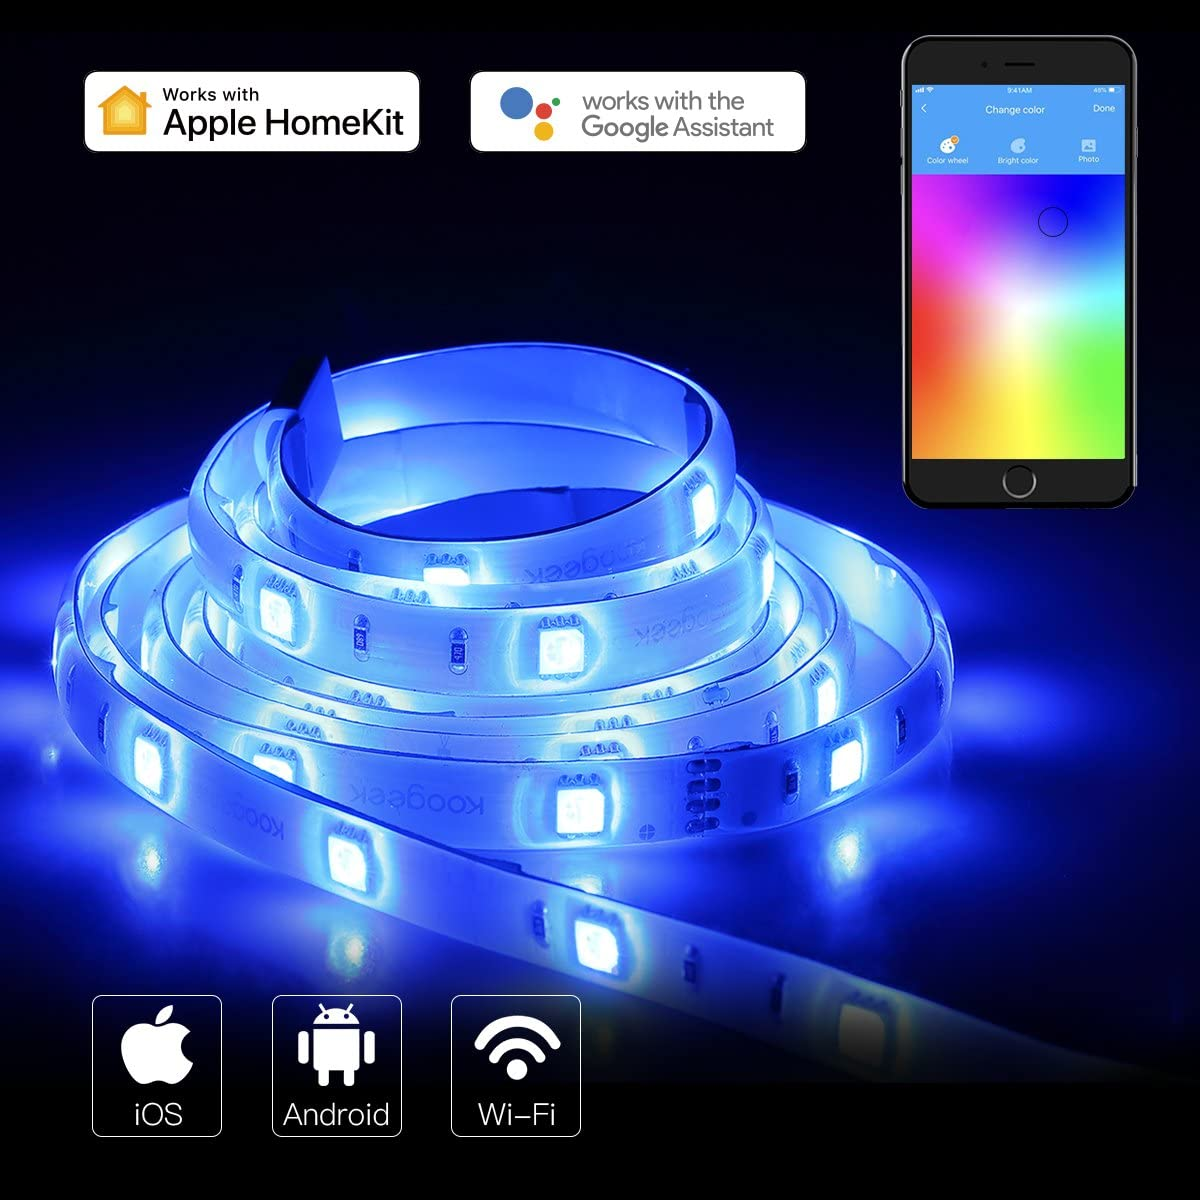 Koogeek Led Smart Wifi Strip 2m Dimmerabile luce 1600 colori Compatibile con Alexa Echo Google Assistant e Apple Homekit IP65 Telecomando impermeabile Alimentato da USB Funziona a 2.4 Ghz ideale per interni e feste